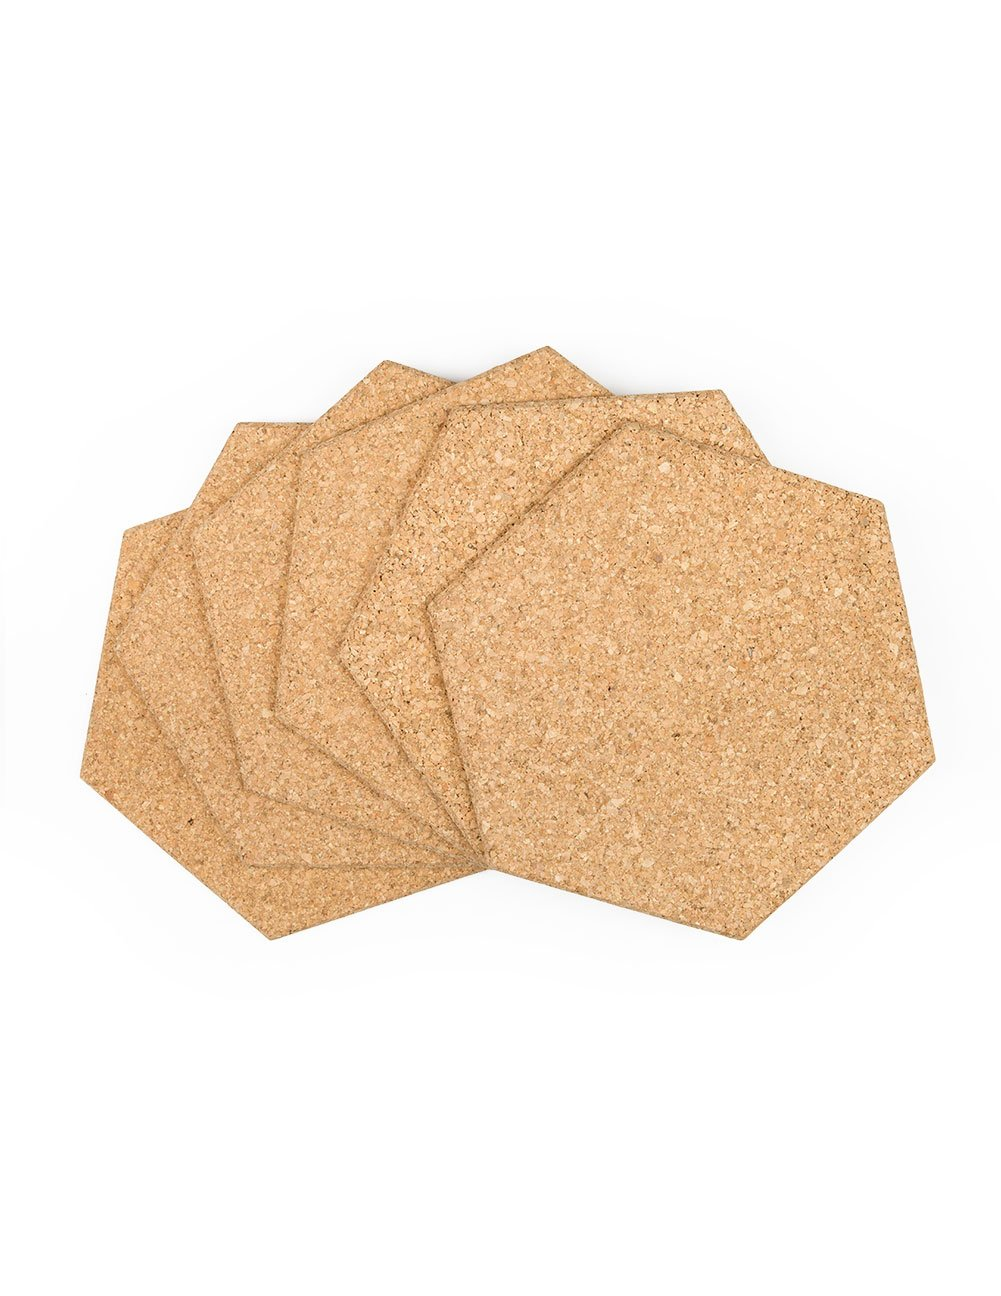 Amazon.com: Cork Hexagon Memo Boards: 300 mm Wide X 300 mm Long X 8 ...